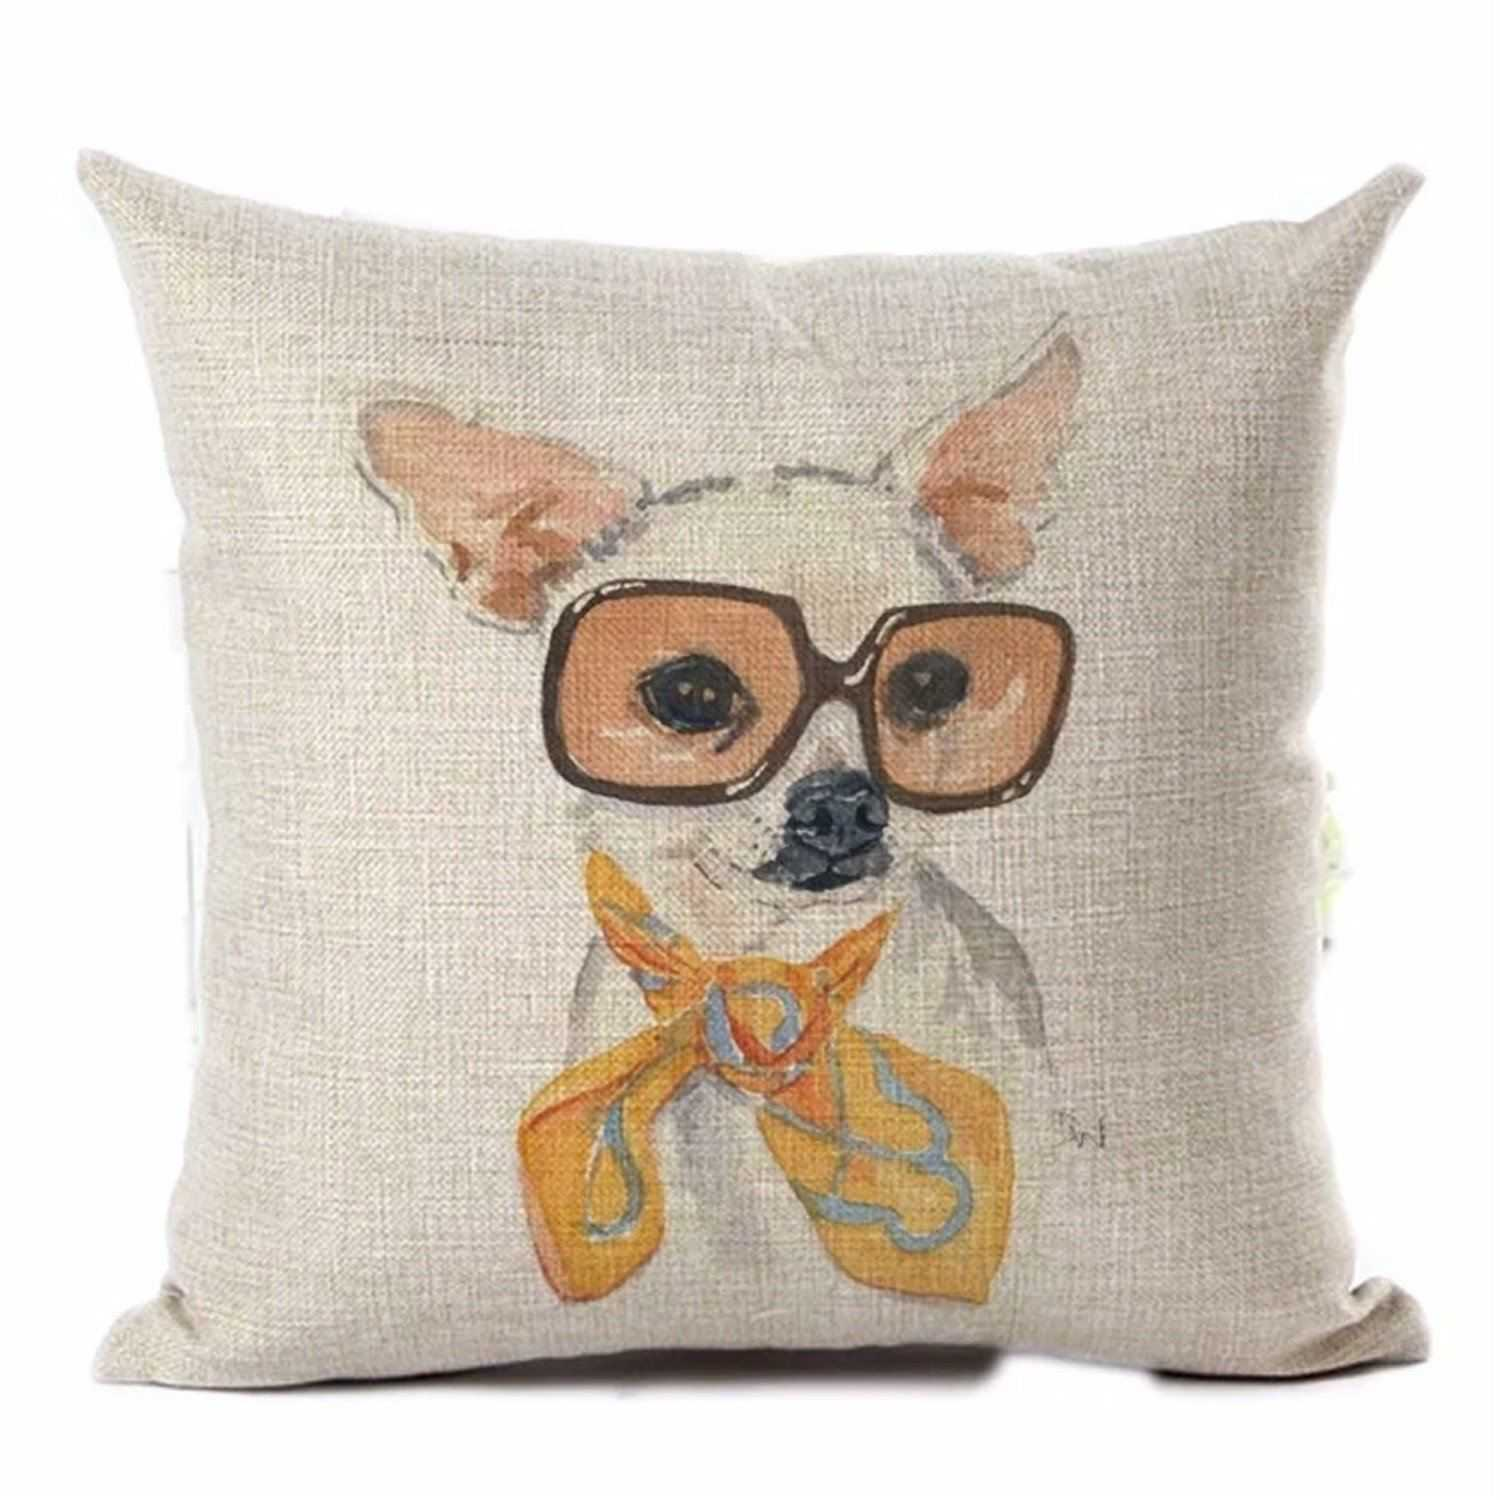 Cushion Pillow Dog Chihuahua Fun Funky Retro - The Renmy Store